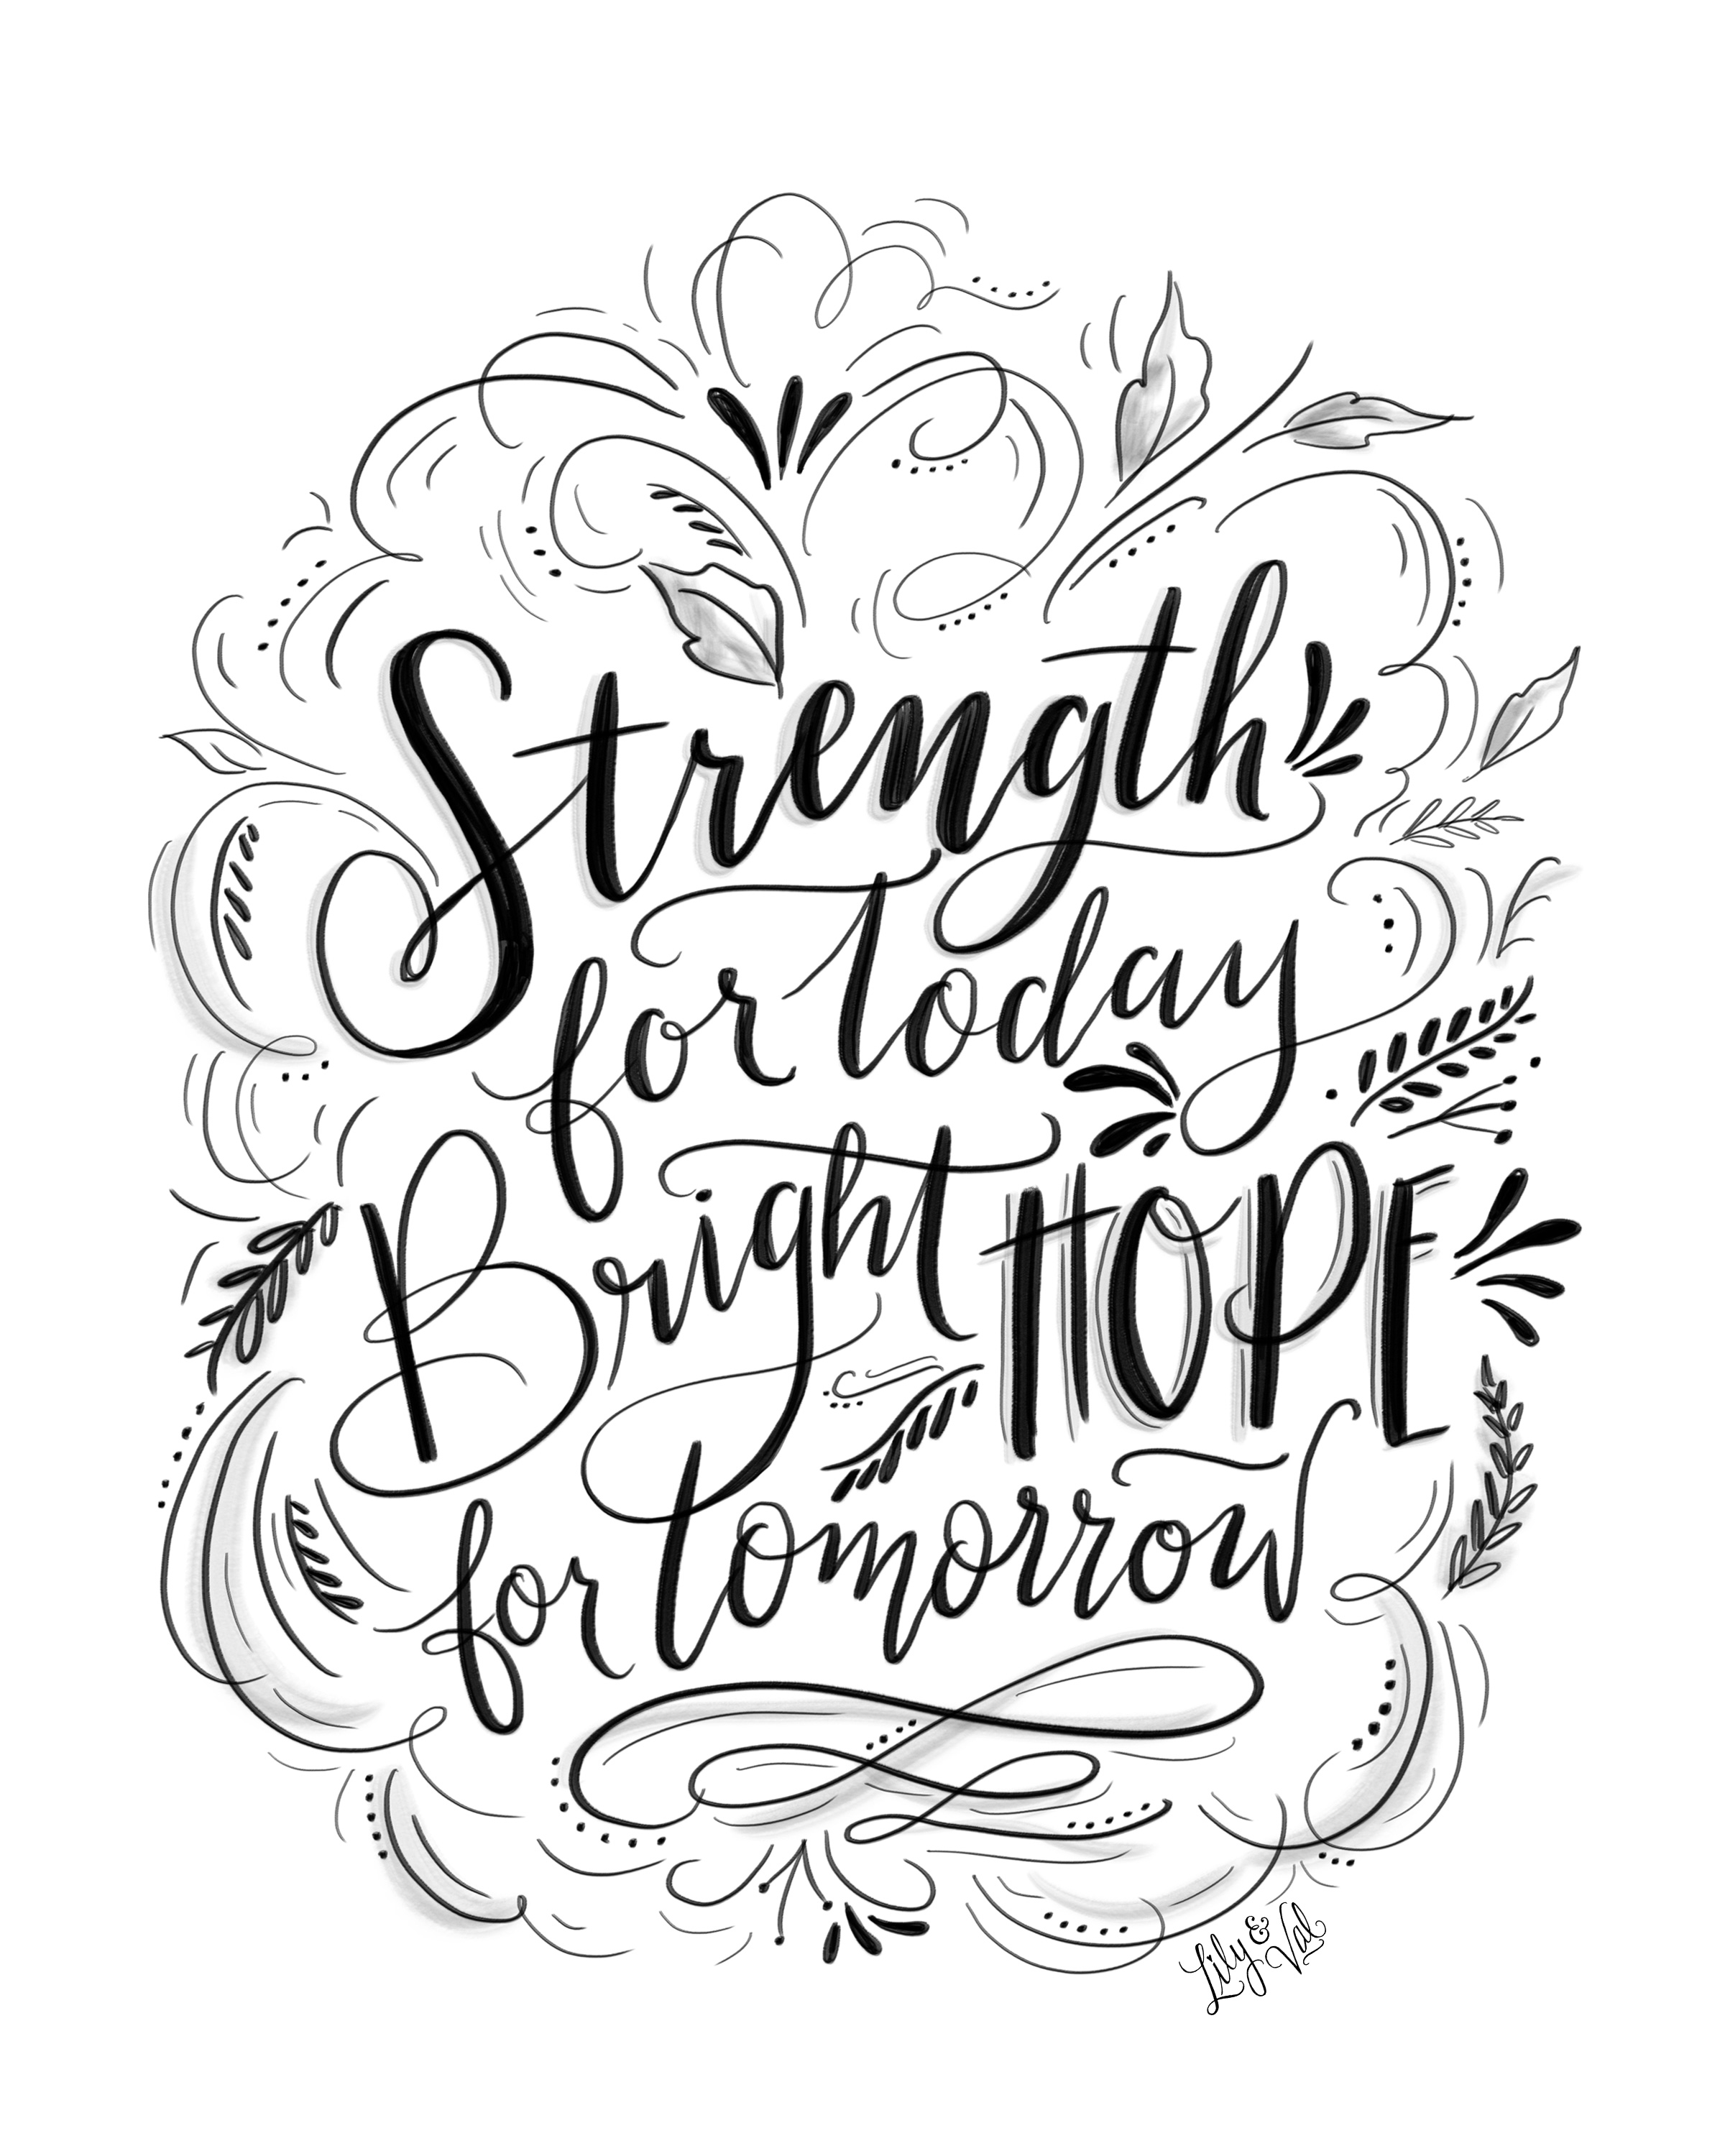 Hand lettered Strength & Hope Download for Hurricane Relief. - 100% of the proceeds will be donated.